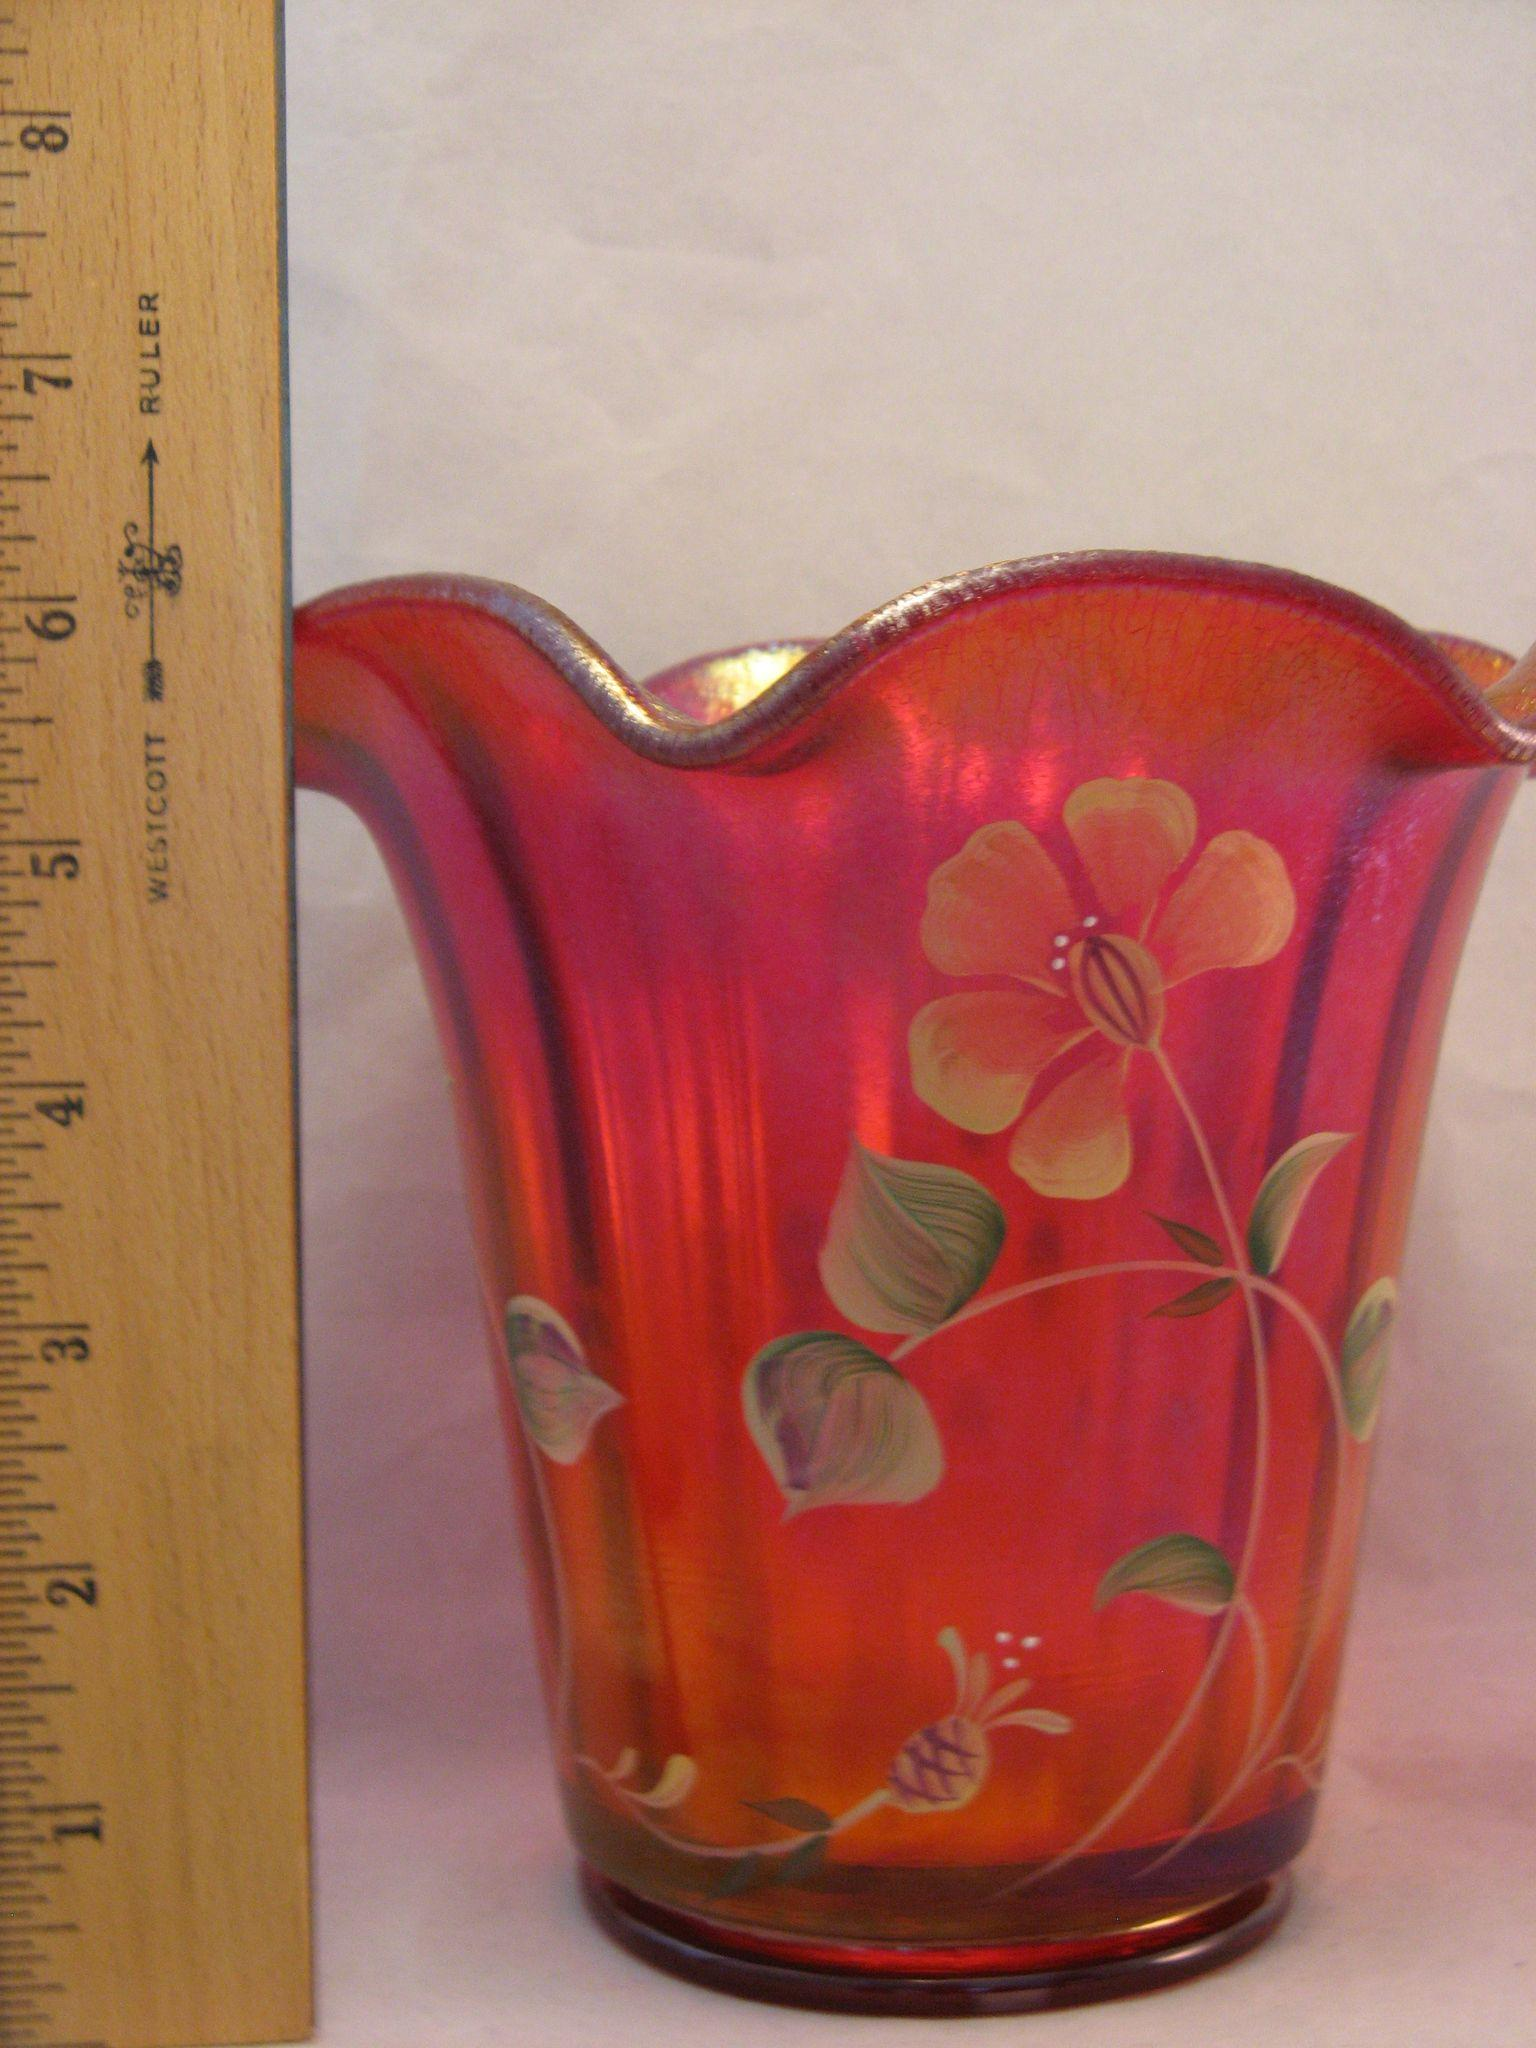 Fenton 2005 100th Anniversary Founder S Rudy Red Carnival Glass Vase From The7hillscollector On